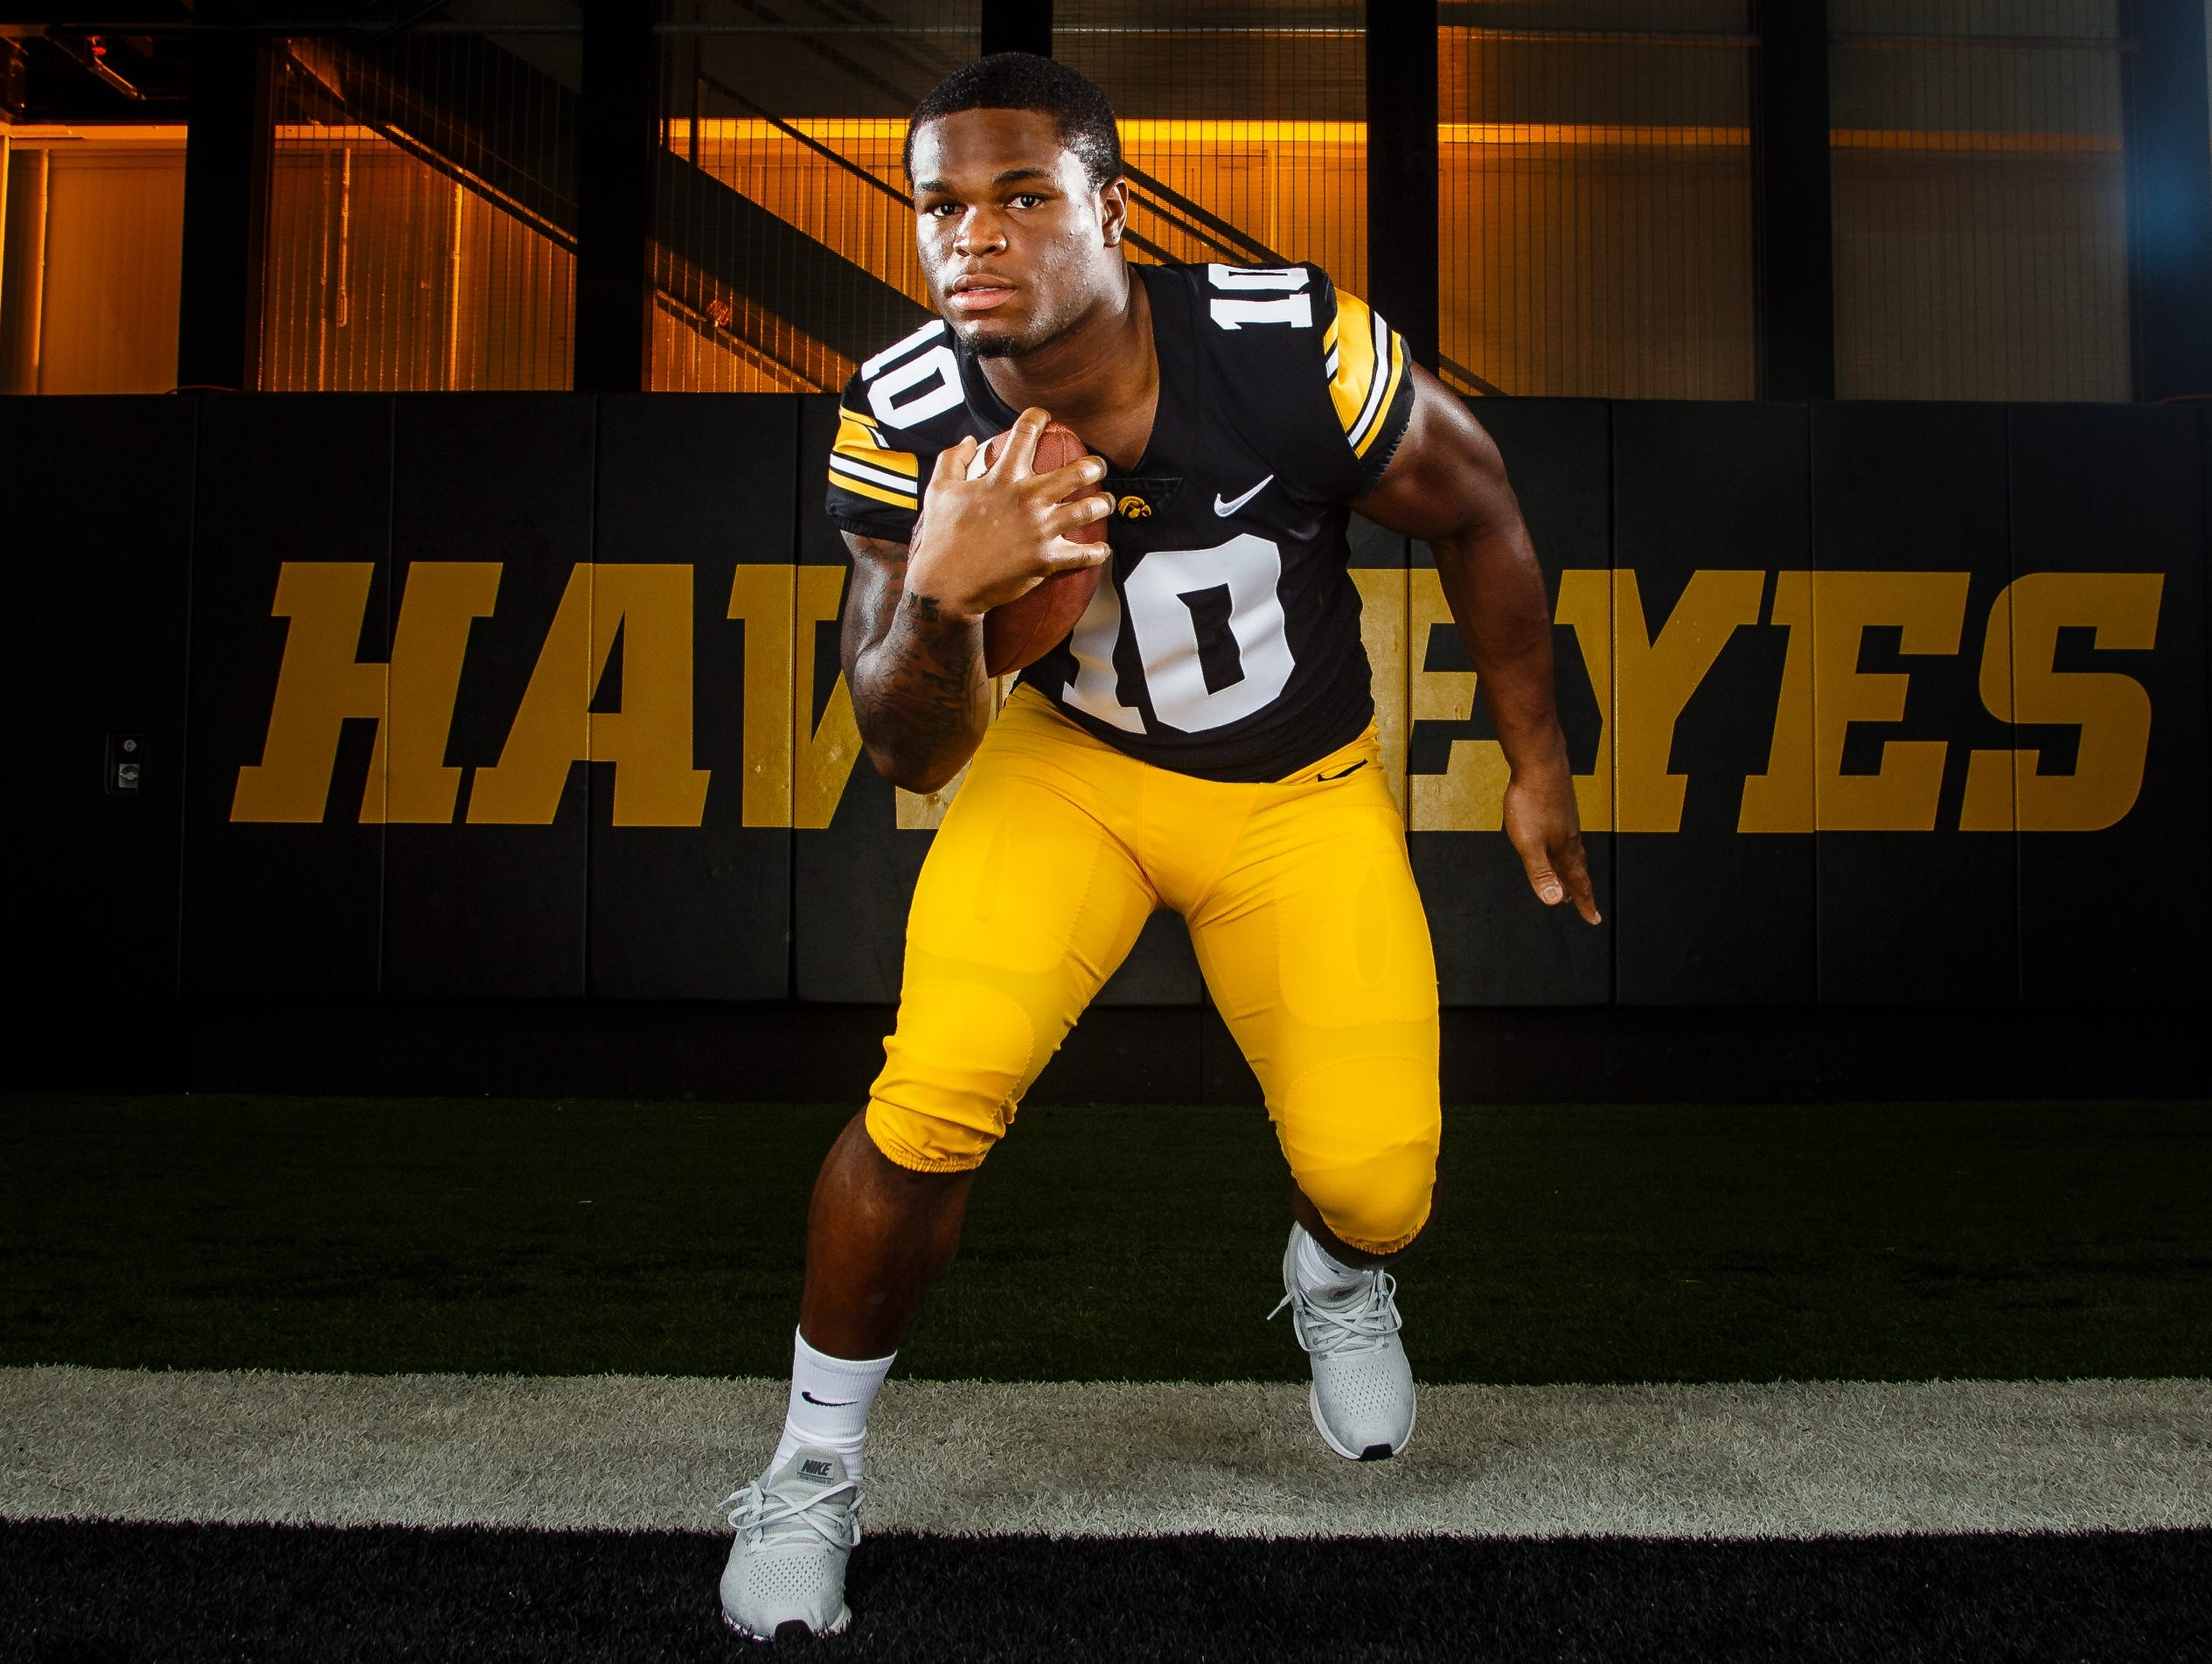 Iowa's Mekhi Sargent poses for a photo during the Iowa Football media day on Friday, Aug. 10, 2018 in Iowa City.